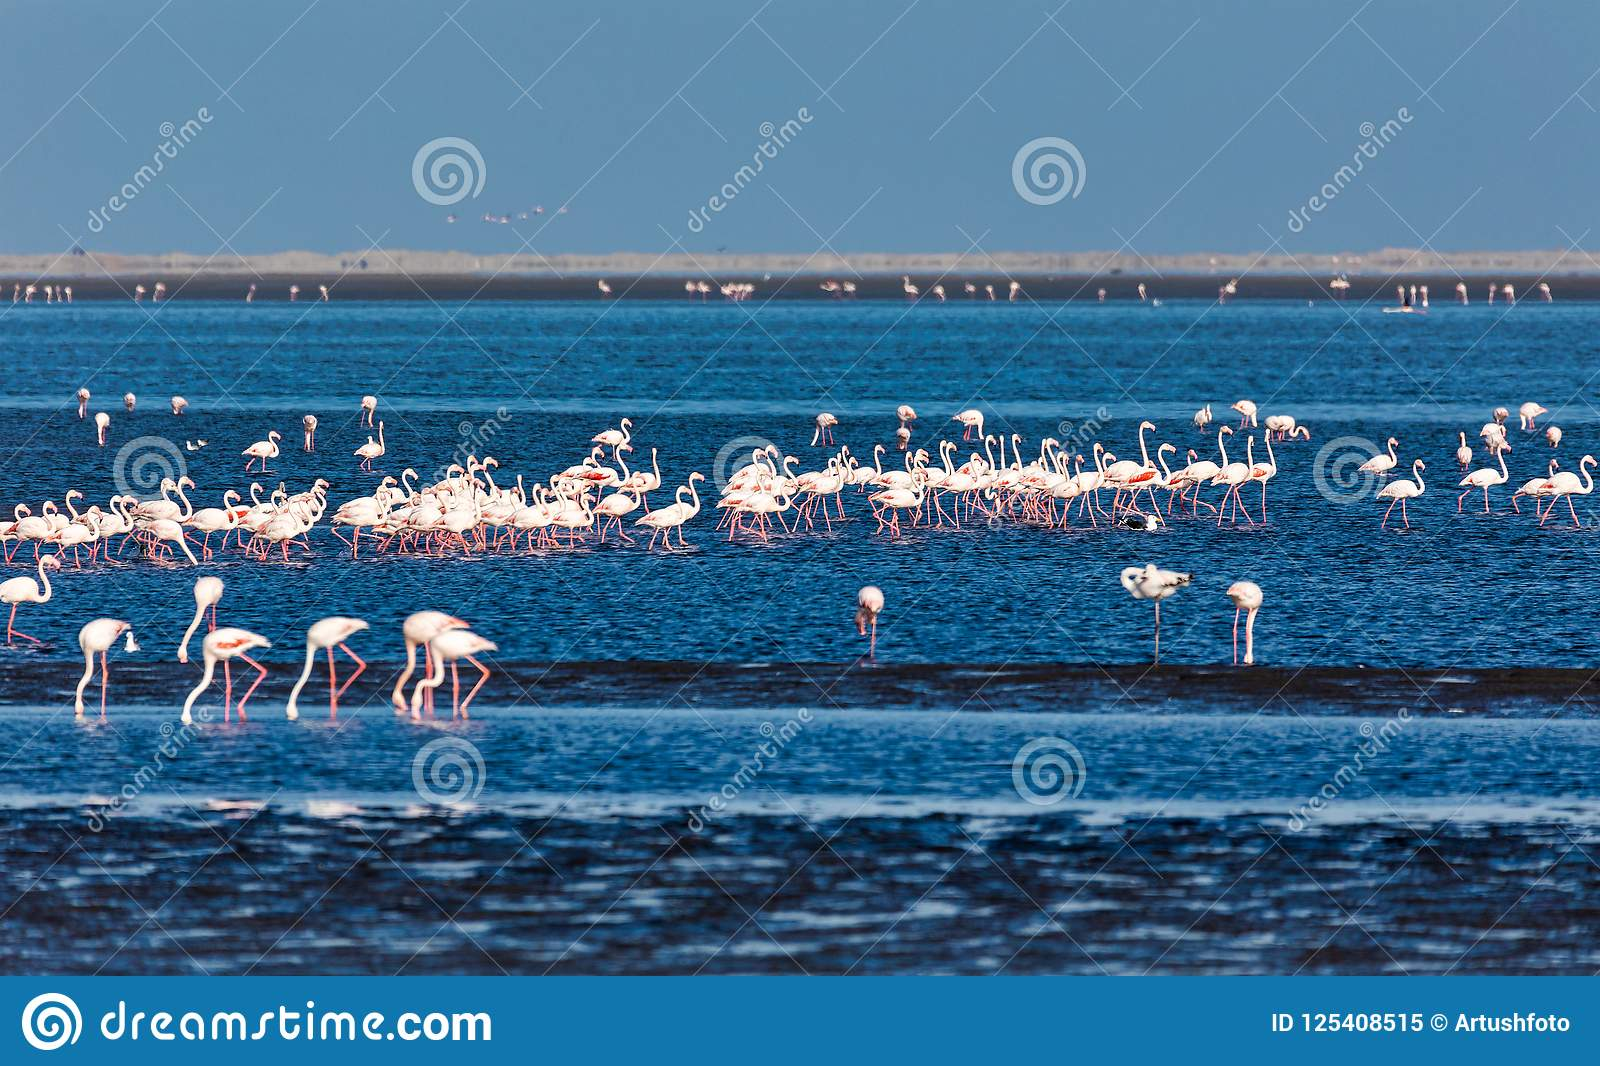 Rosy Flamingo colony in Walvis Bay Namibia, Africa wildlife